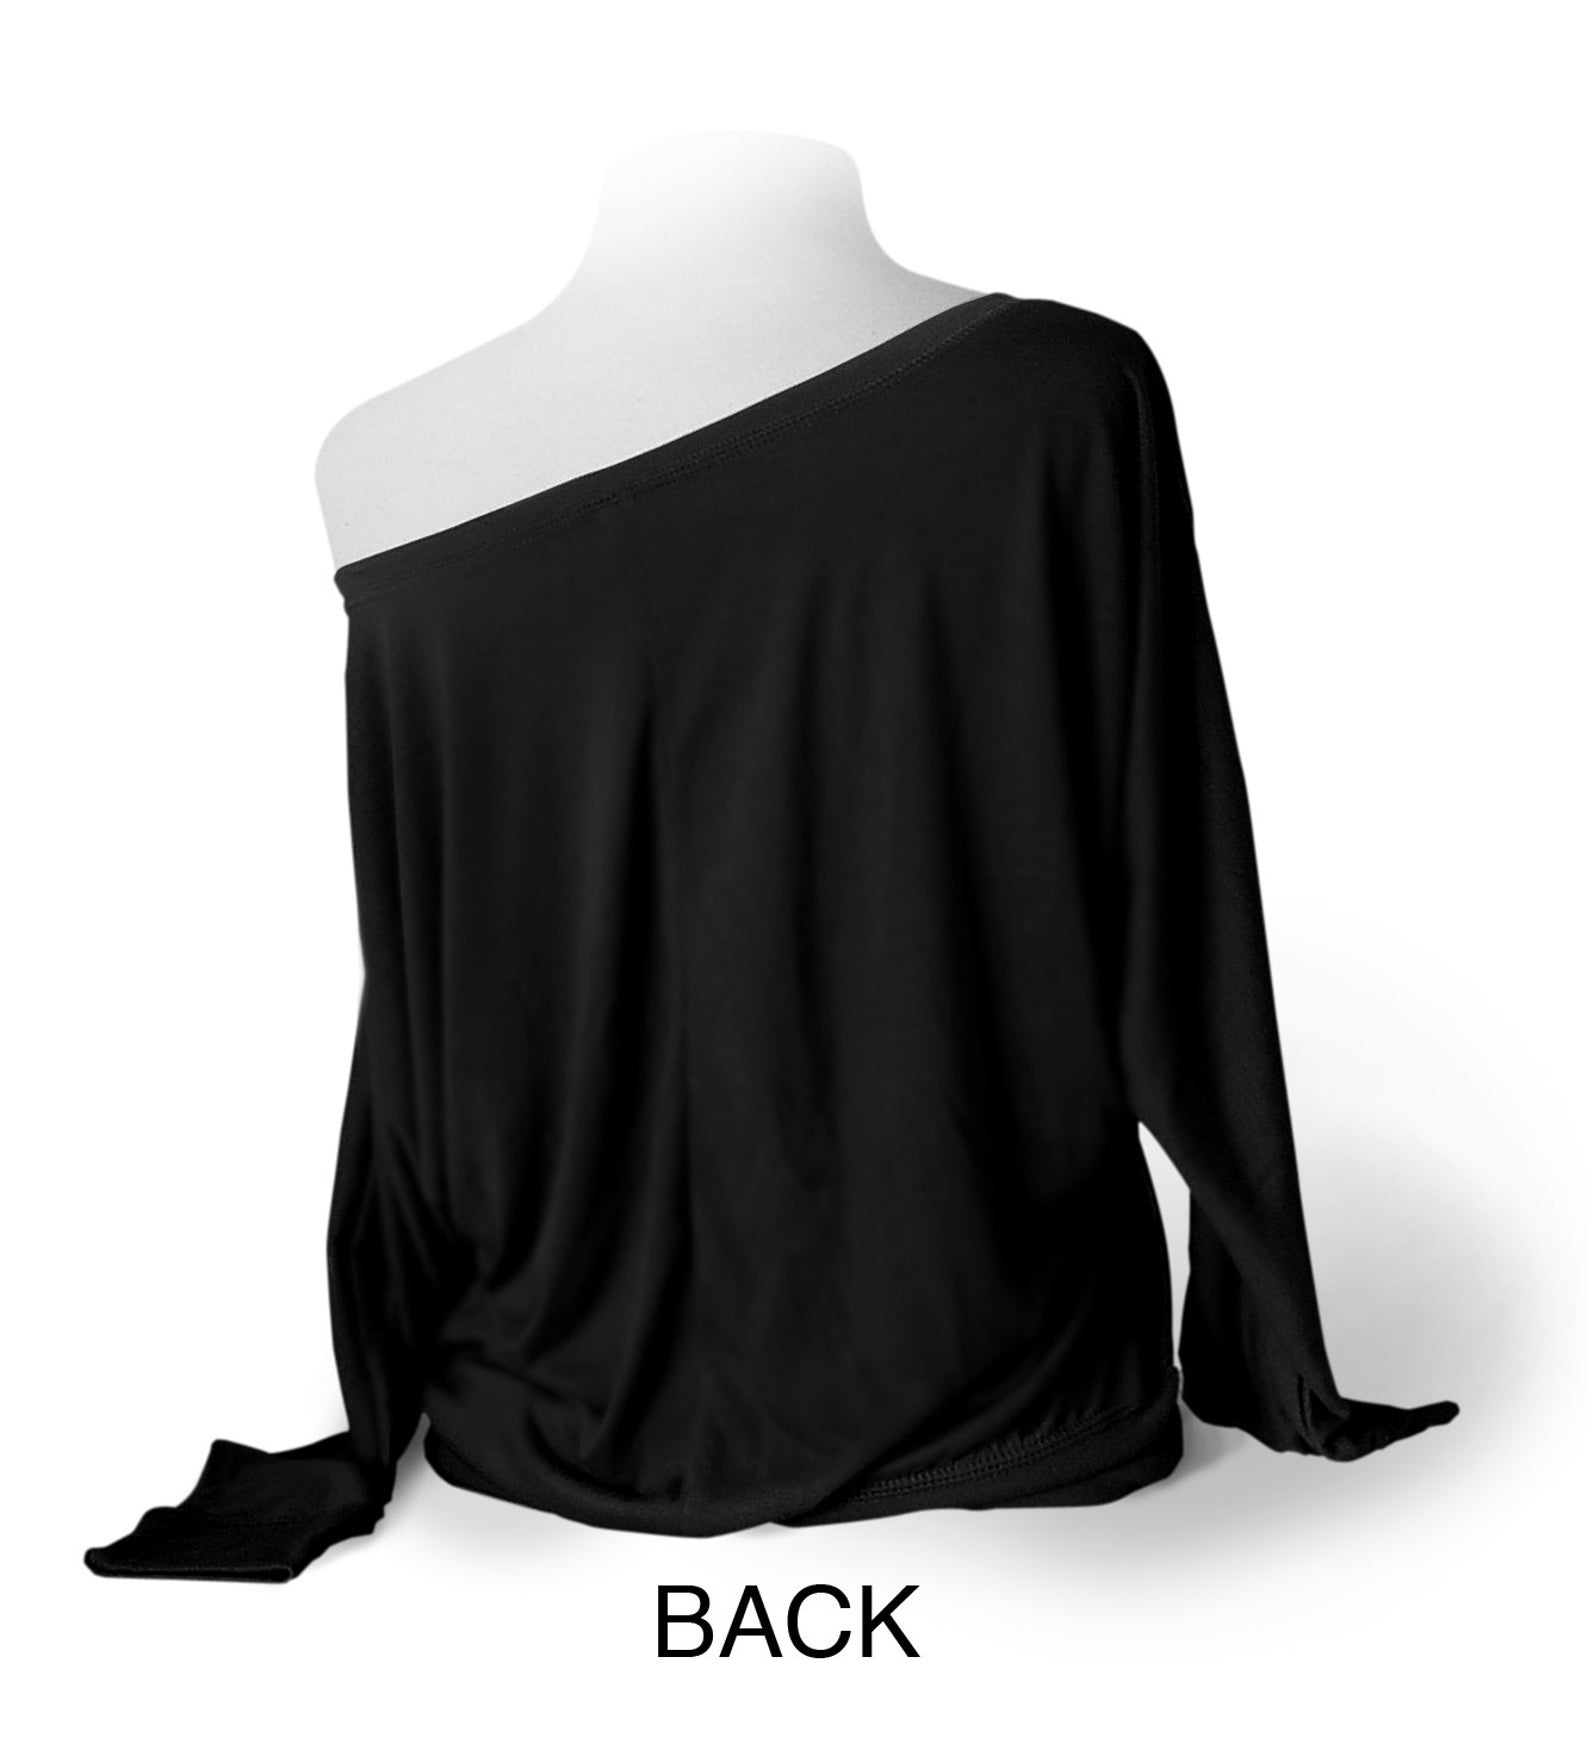 upscale dance shirt - black. long sleeve leotard coverup. flowy soft off-shoulder top for ballet, tap, or jazz dancers.